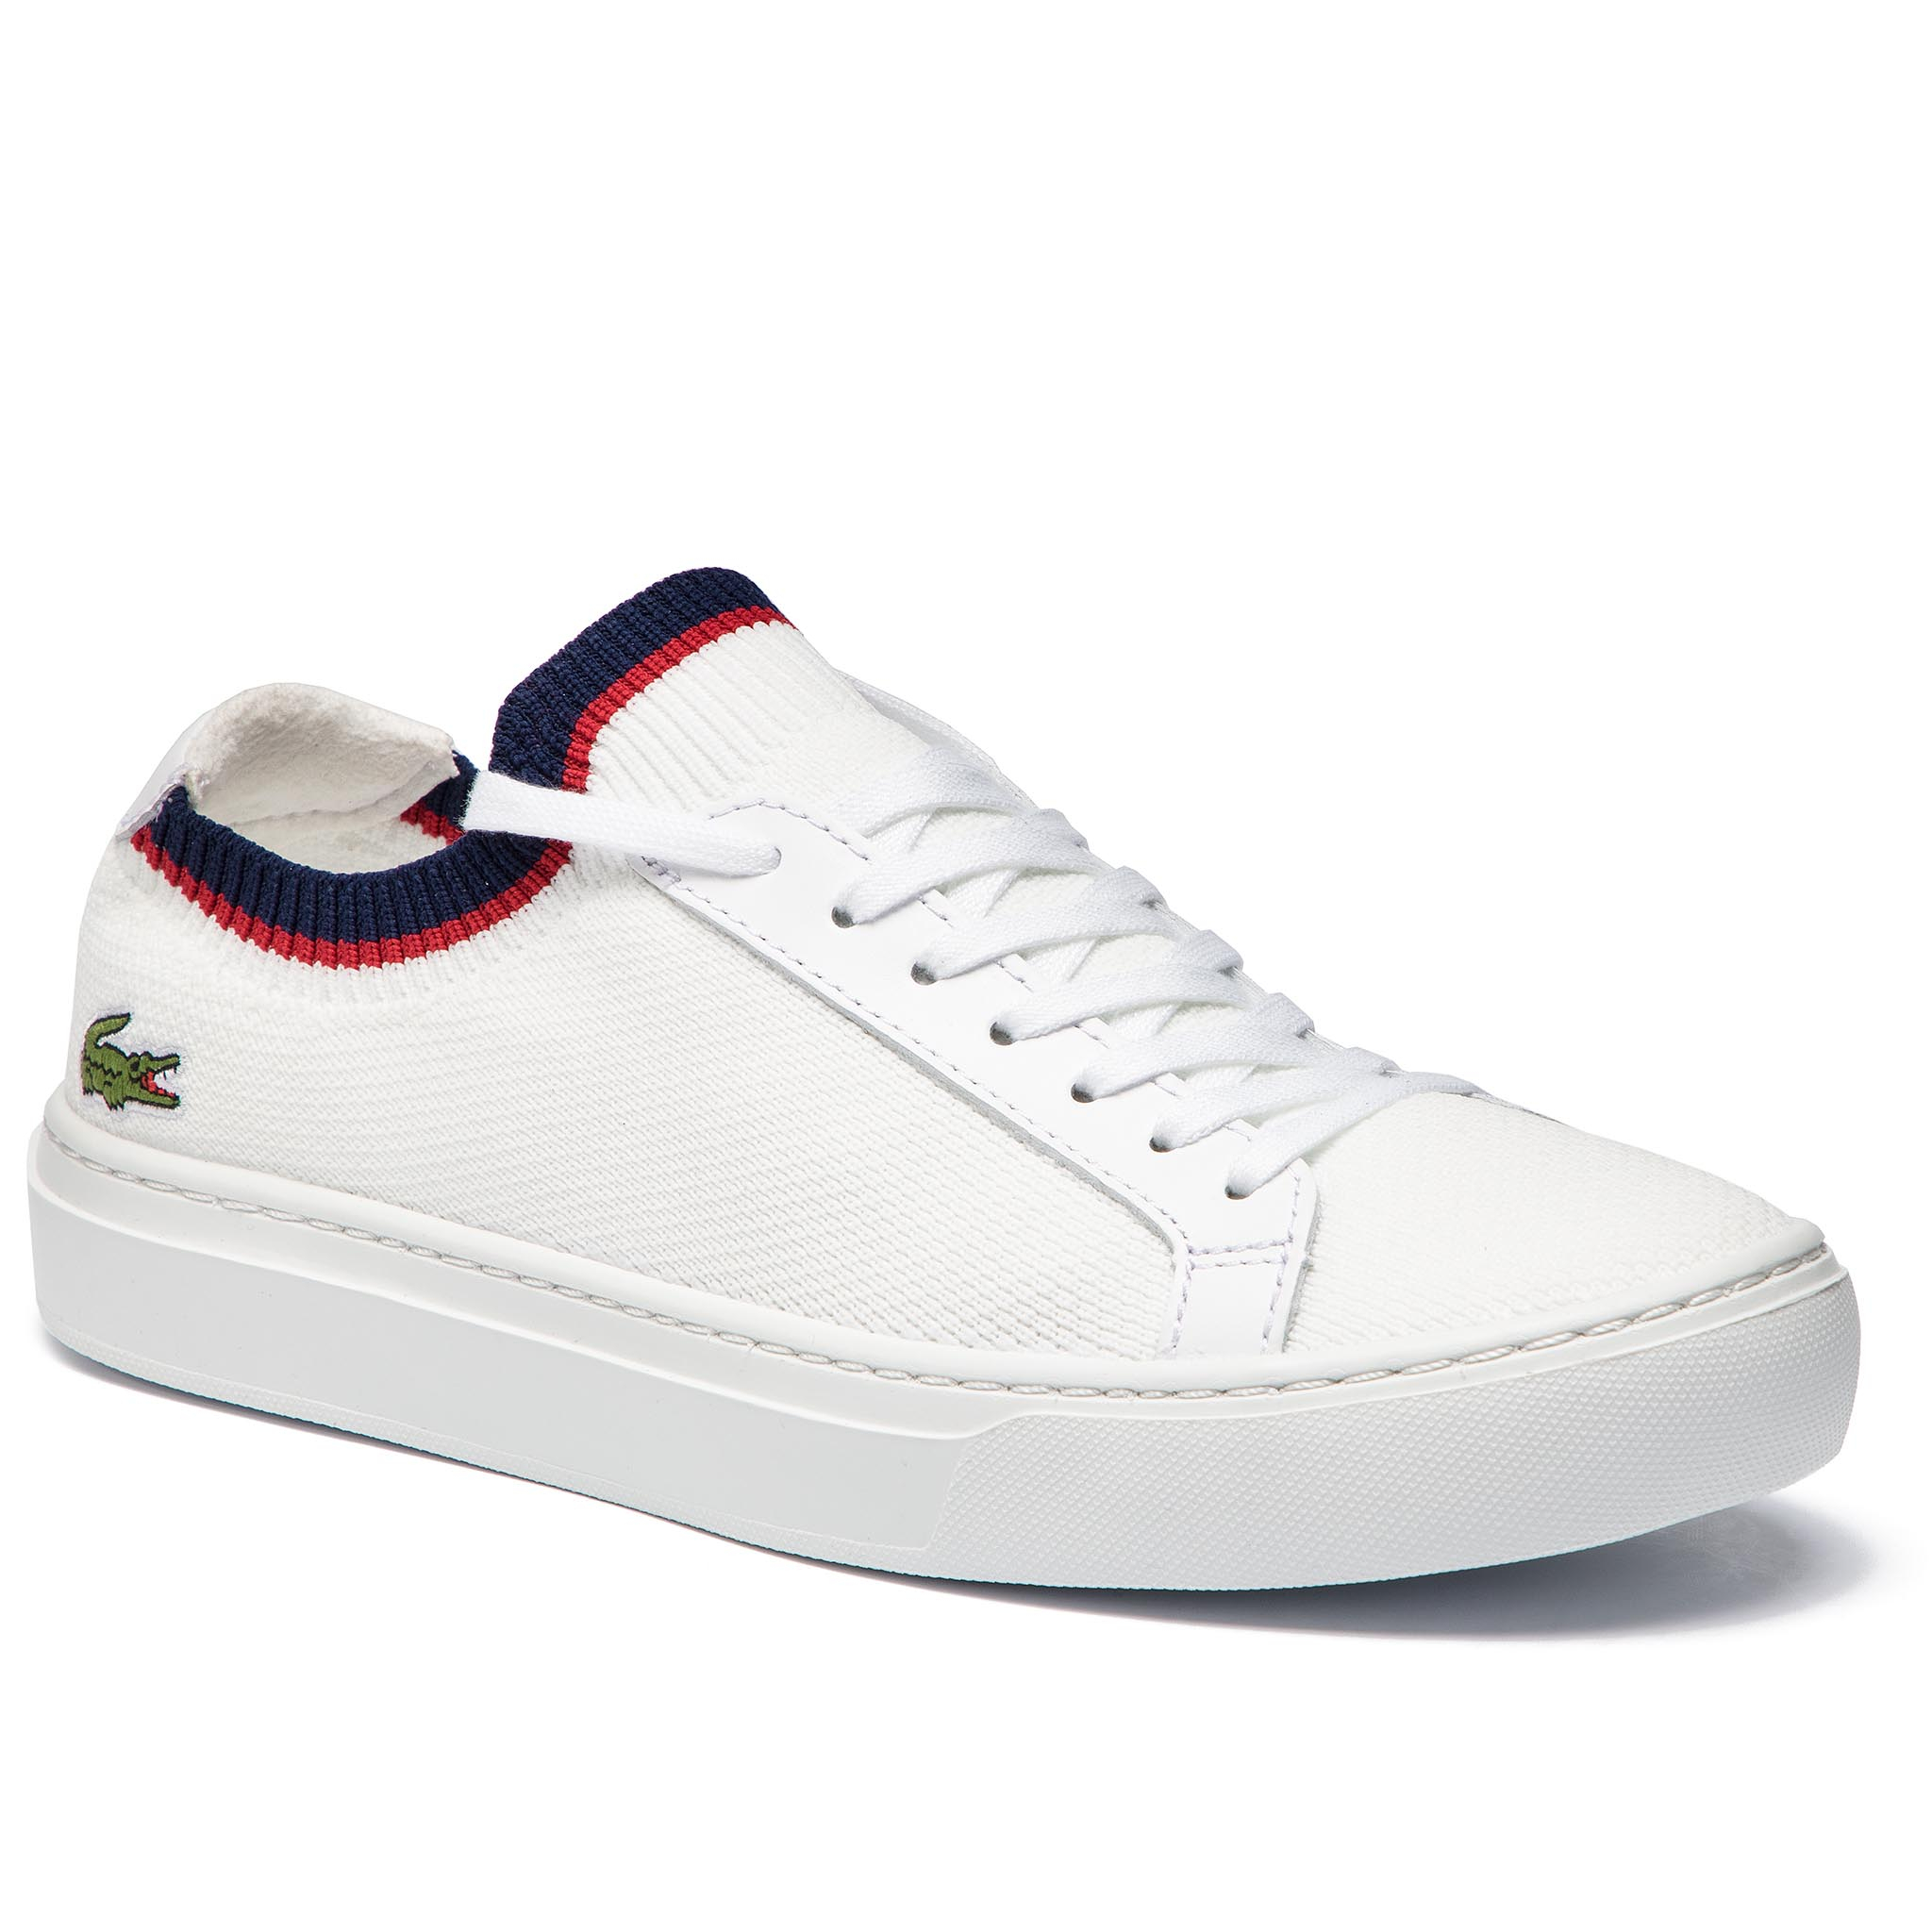 Sneakers LACOSTE - La Piquee 199 1 Cma 7-37CMA0038407 Wht/Nvy/Red New